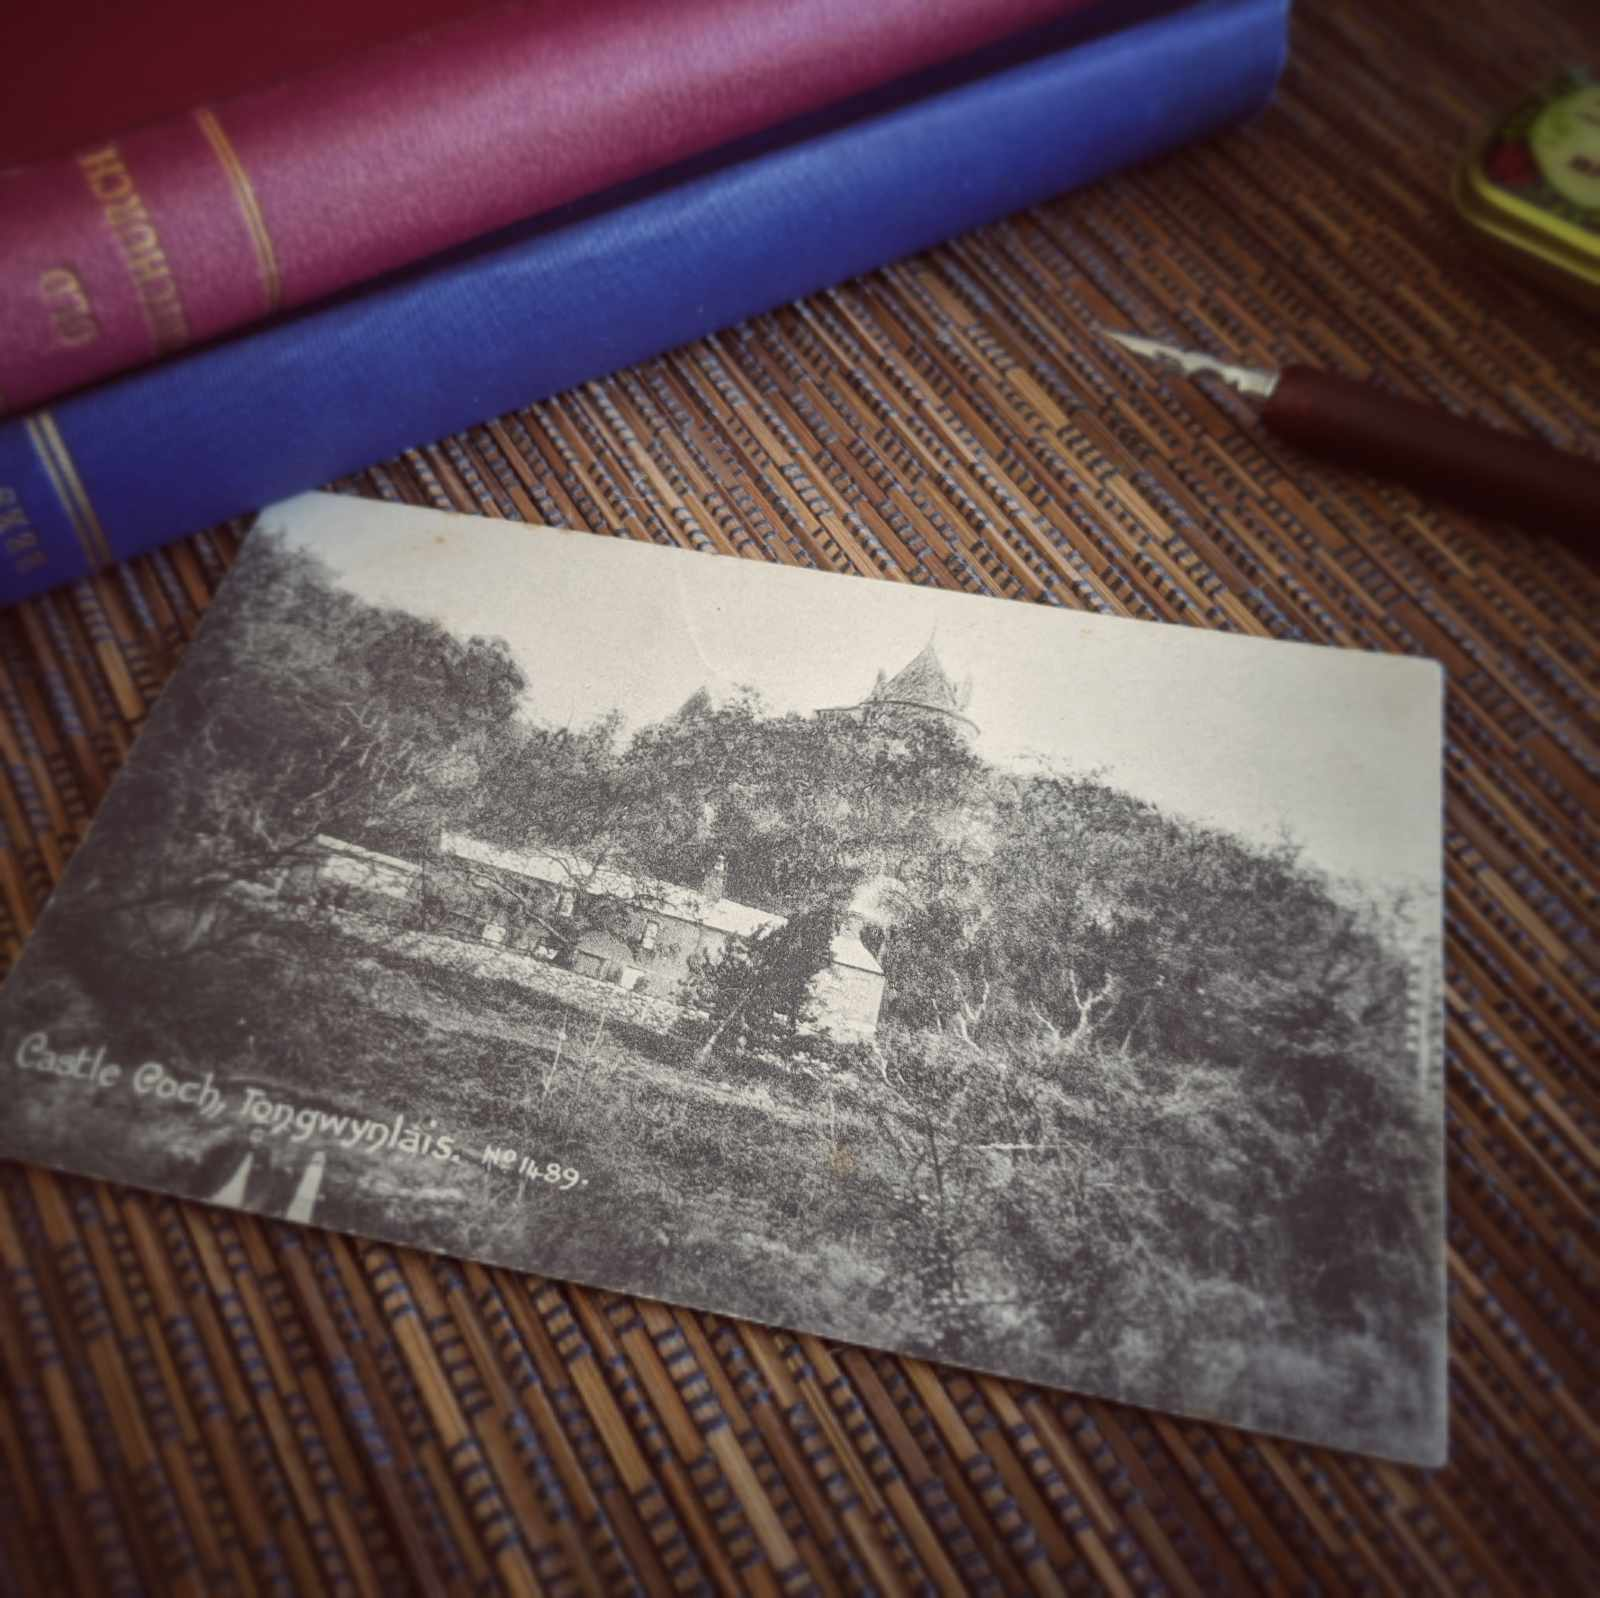 Old postcard with image of Castell Coch